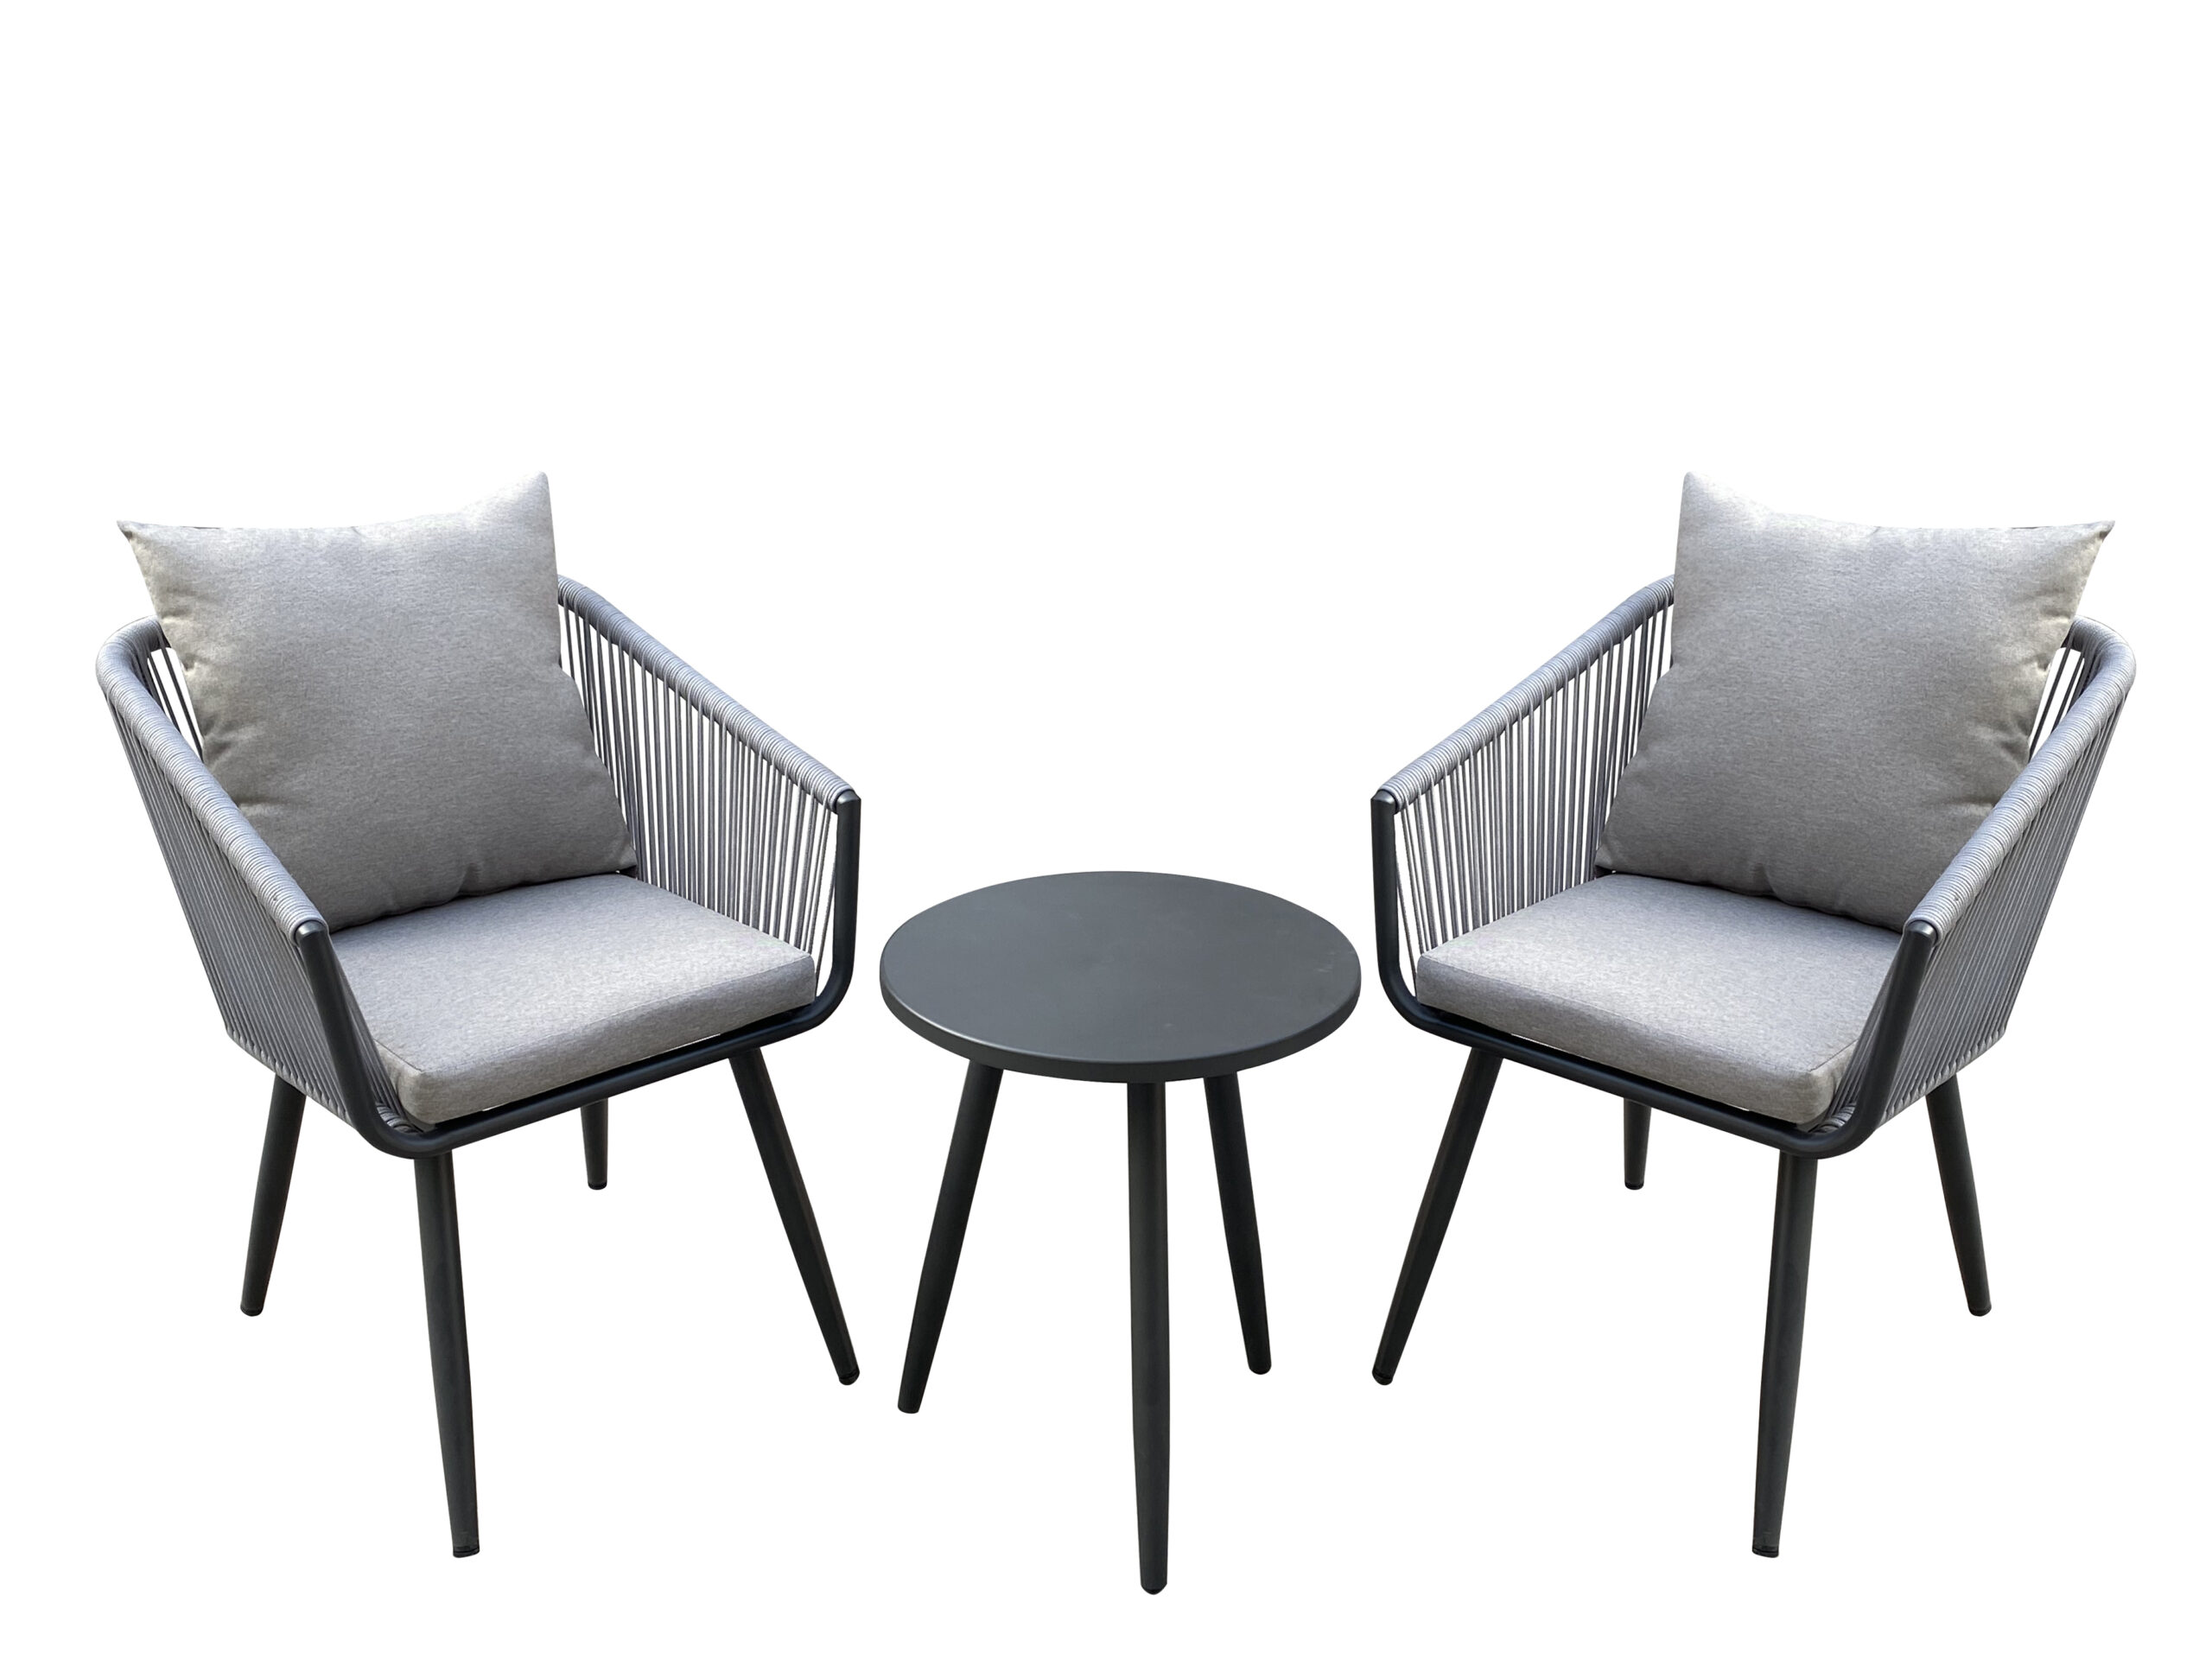 Nicole Miller Patio 3 Piece Outdoor Rope Chat Set with Cushions